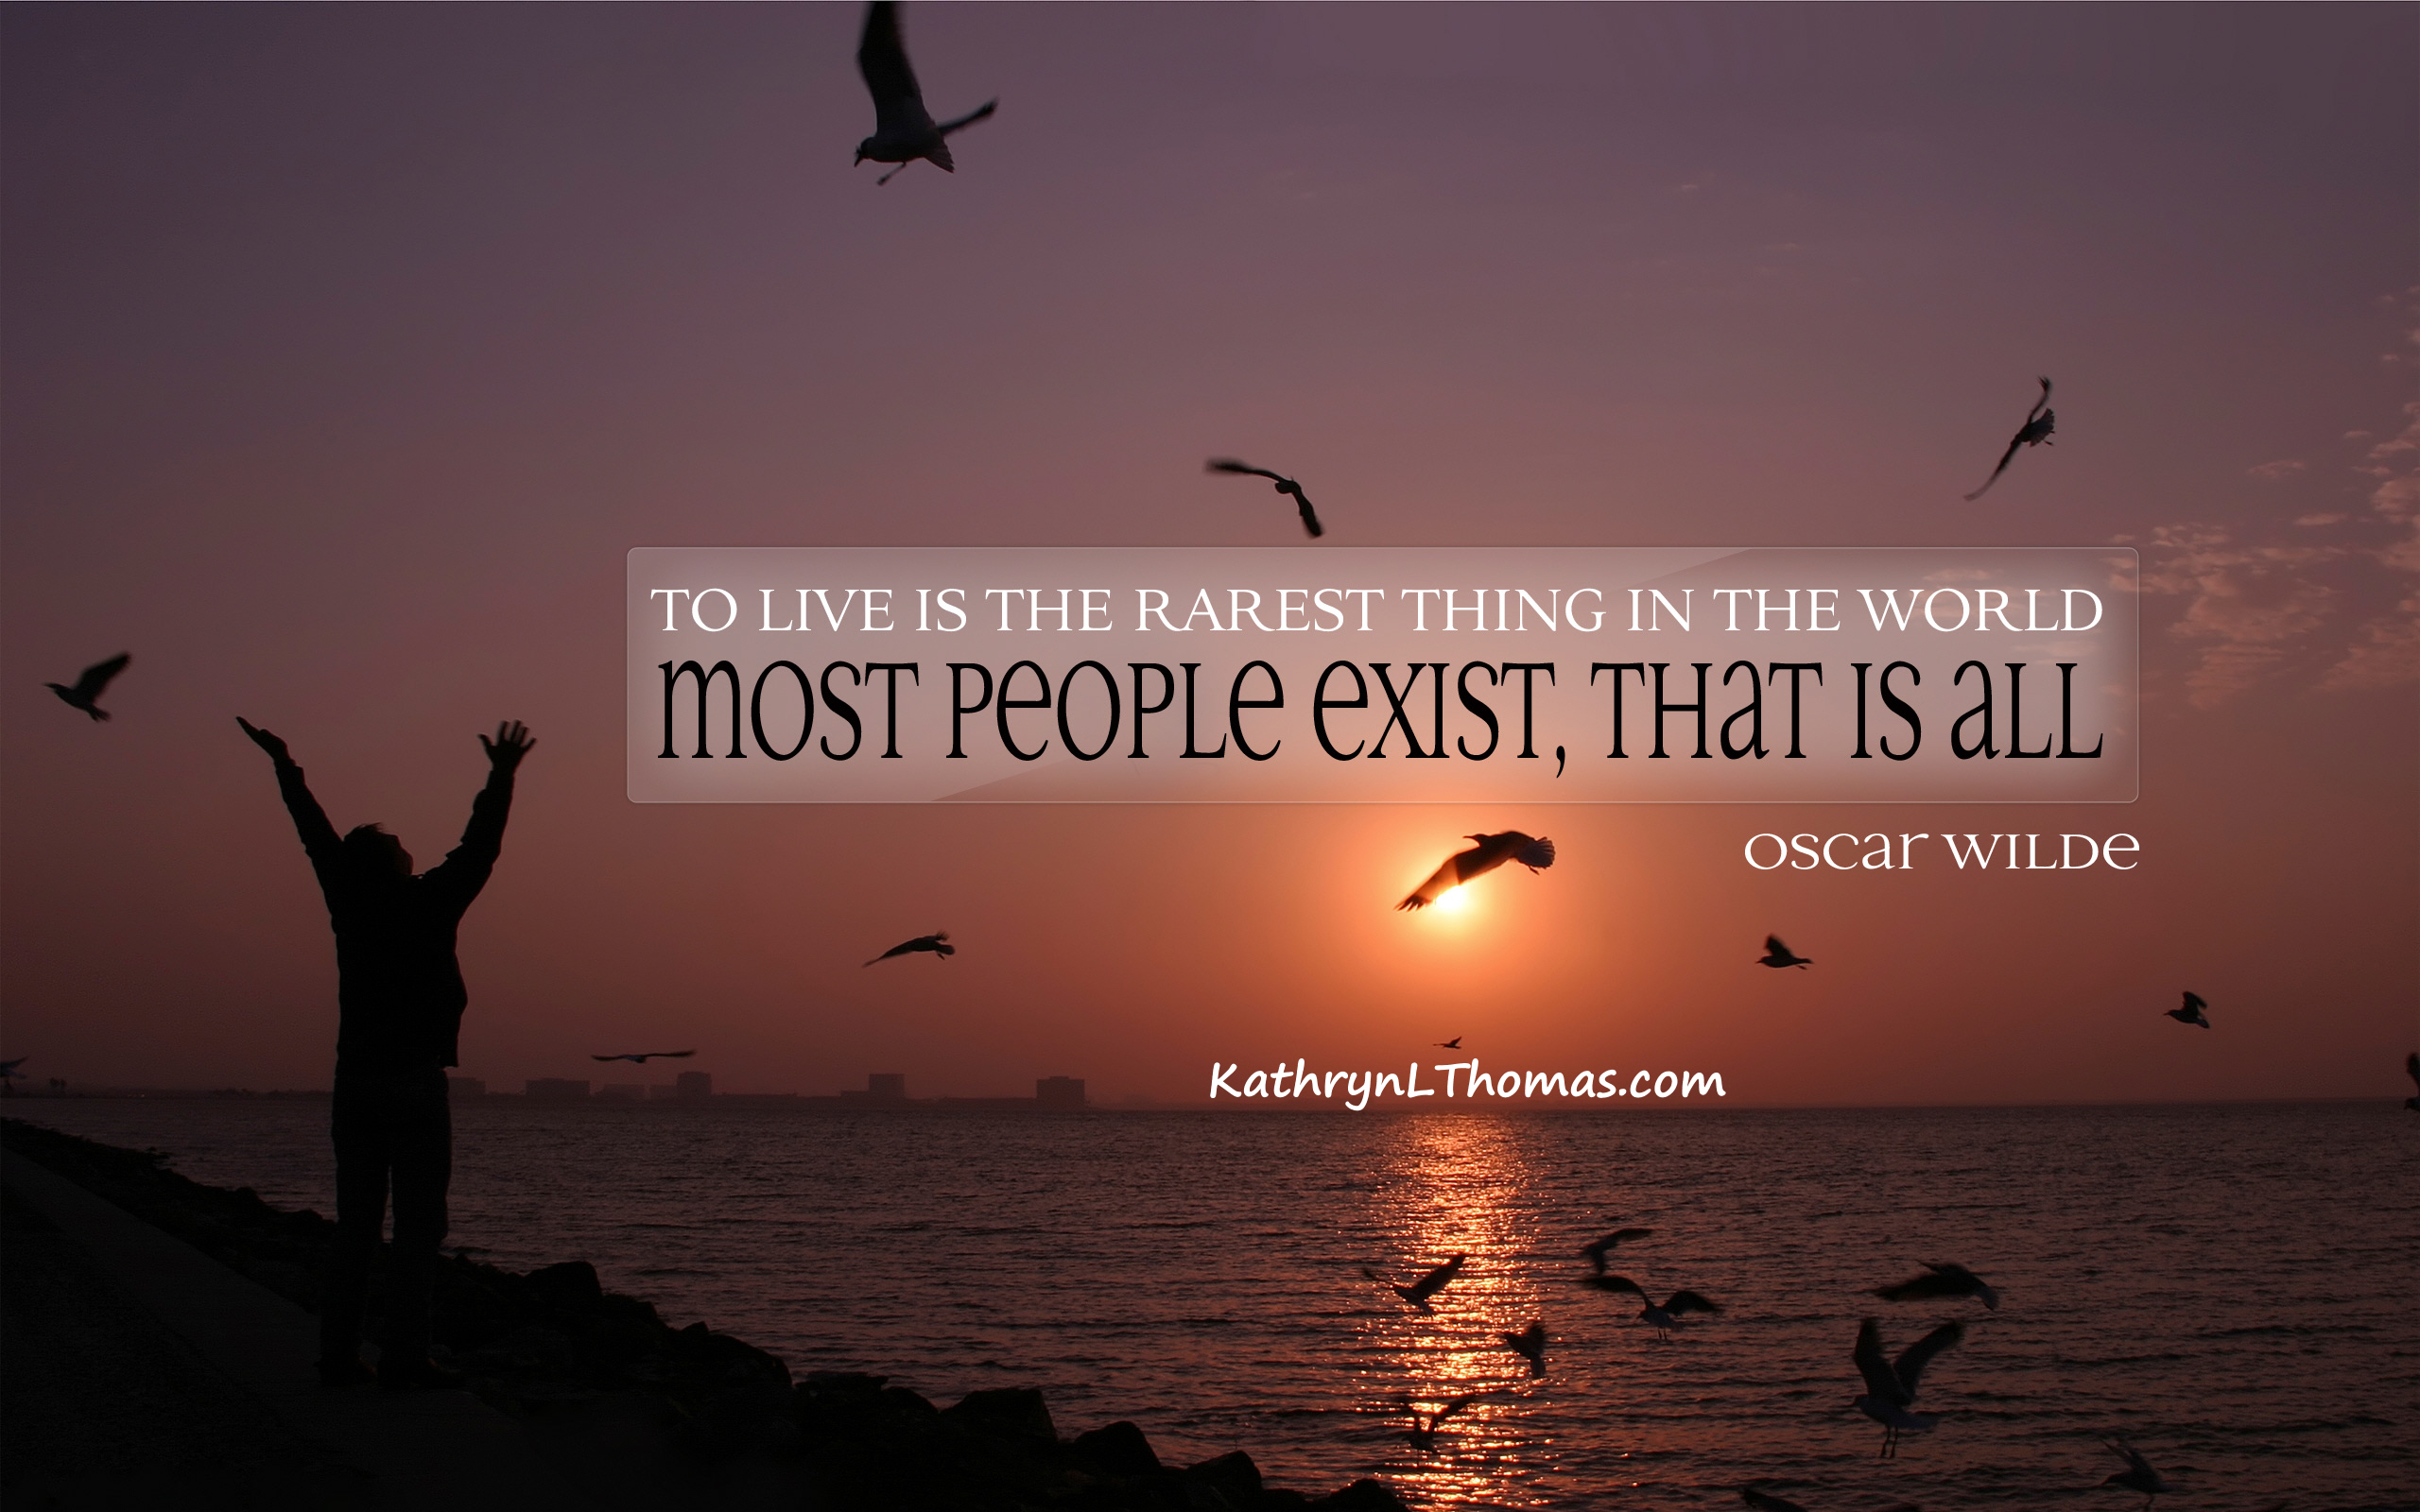 to-live-is-the-rarest-thing-in-the-world-most-people-exist-that-is-all.jpg